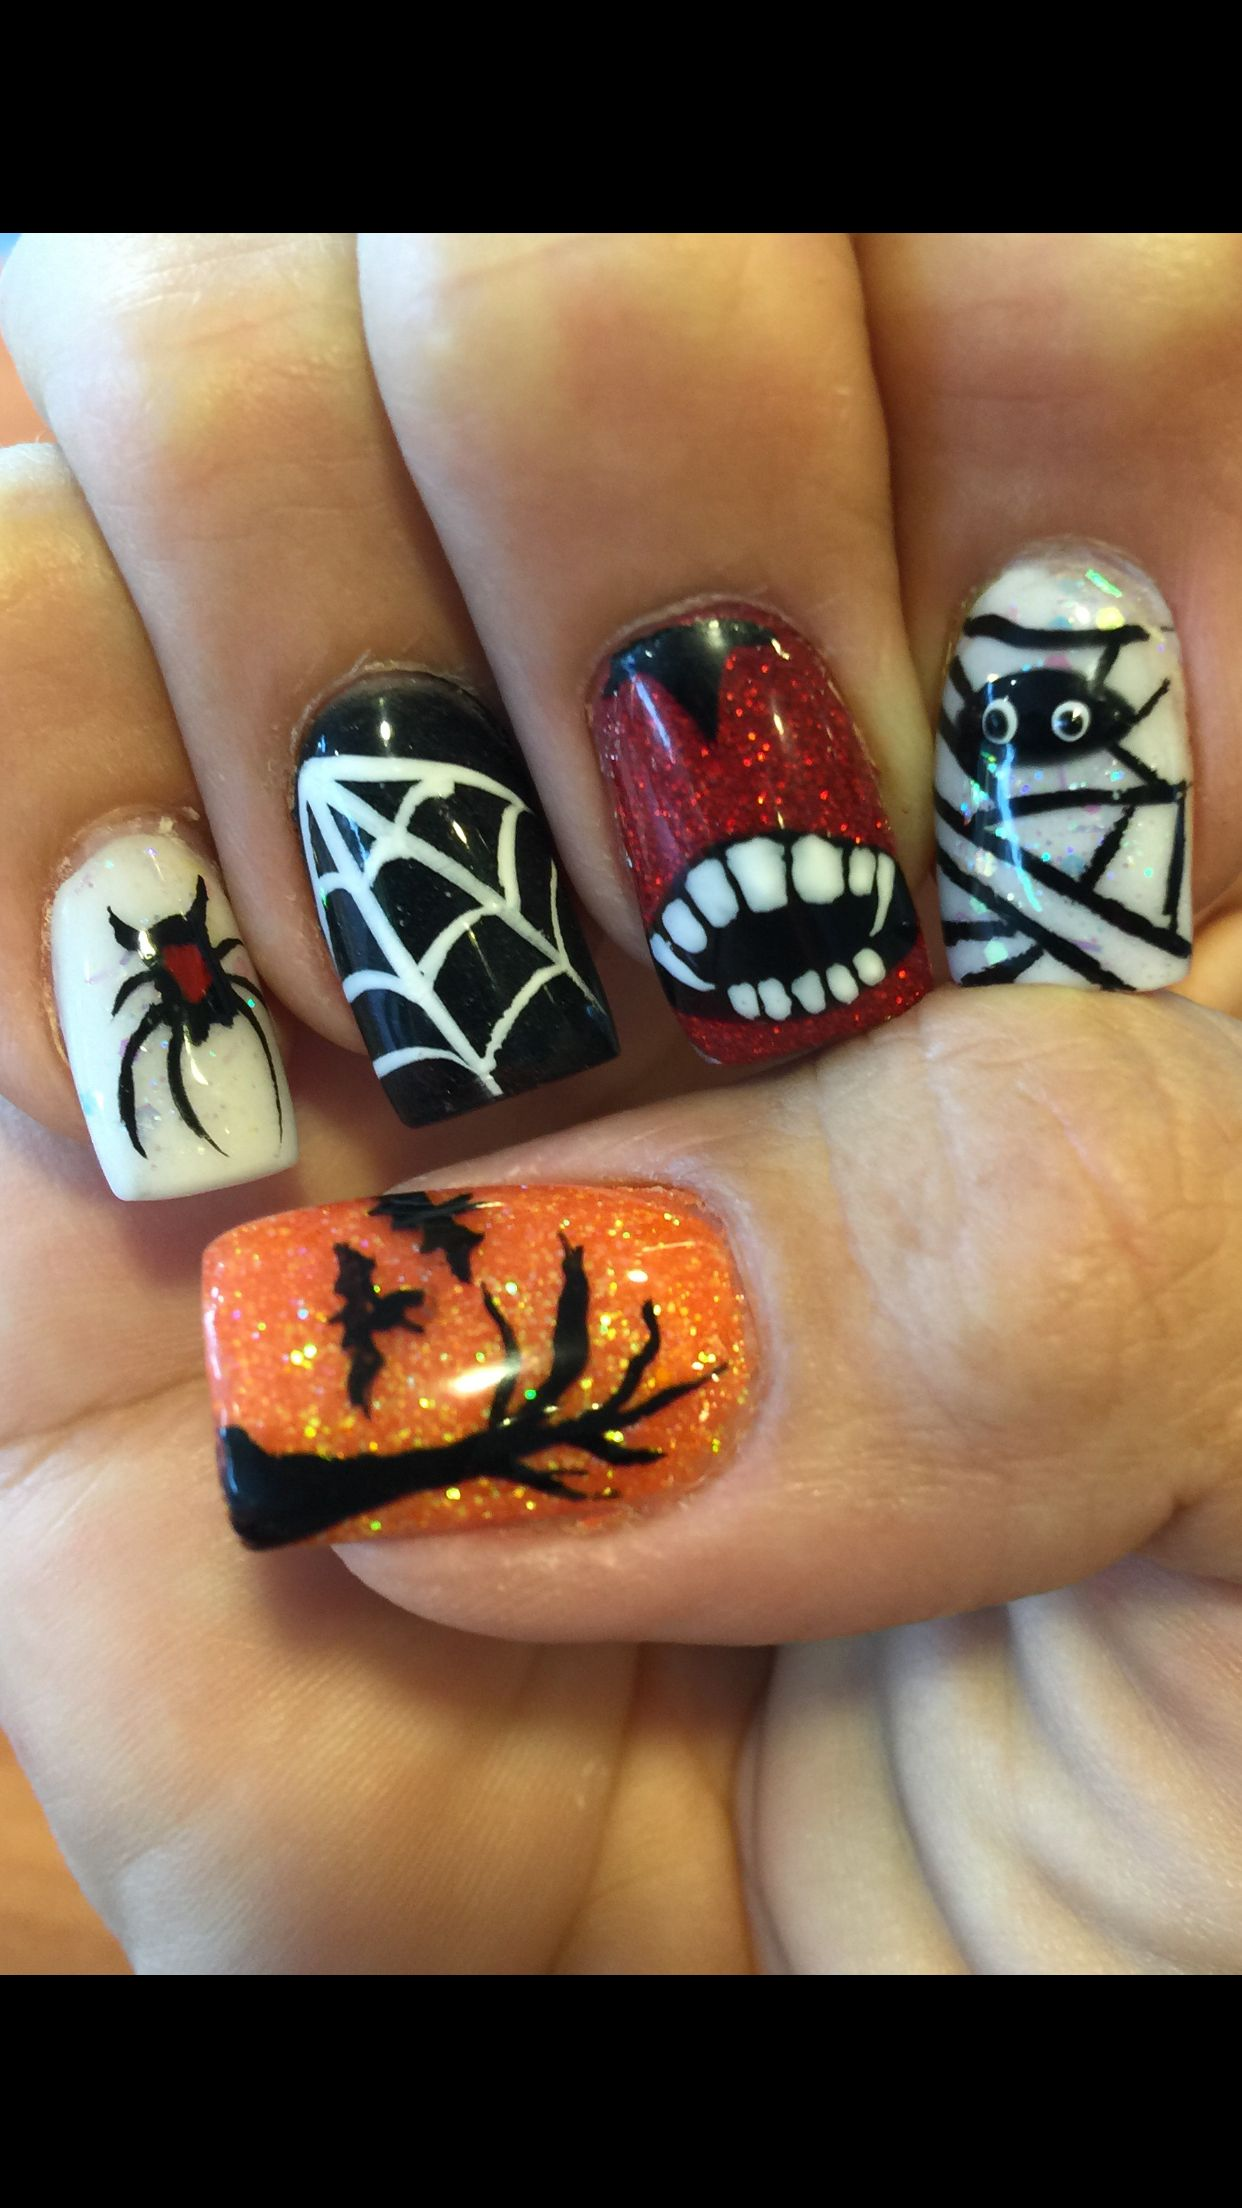 Halloween Acrylic Nail Design | Halloween acrylic nails ...